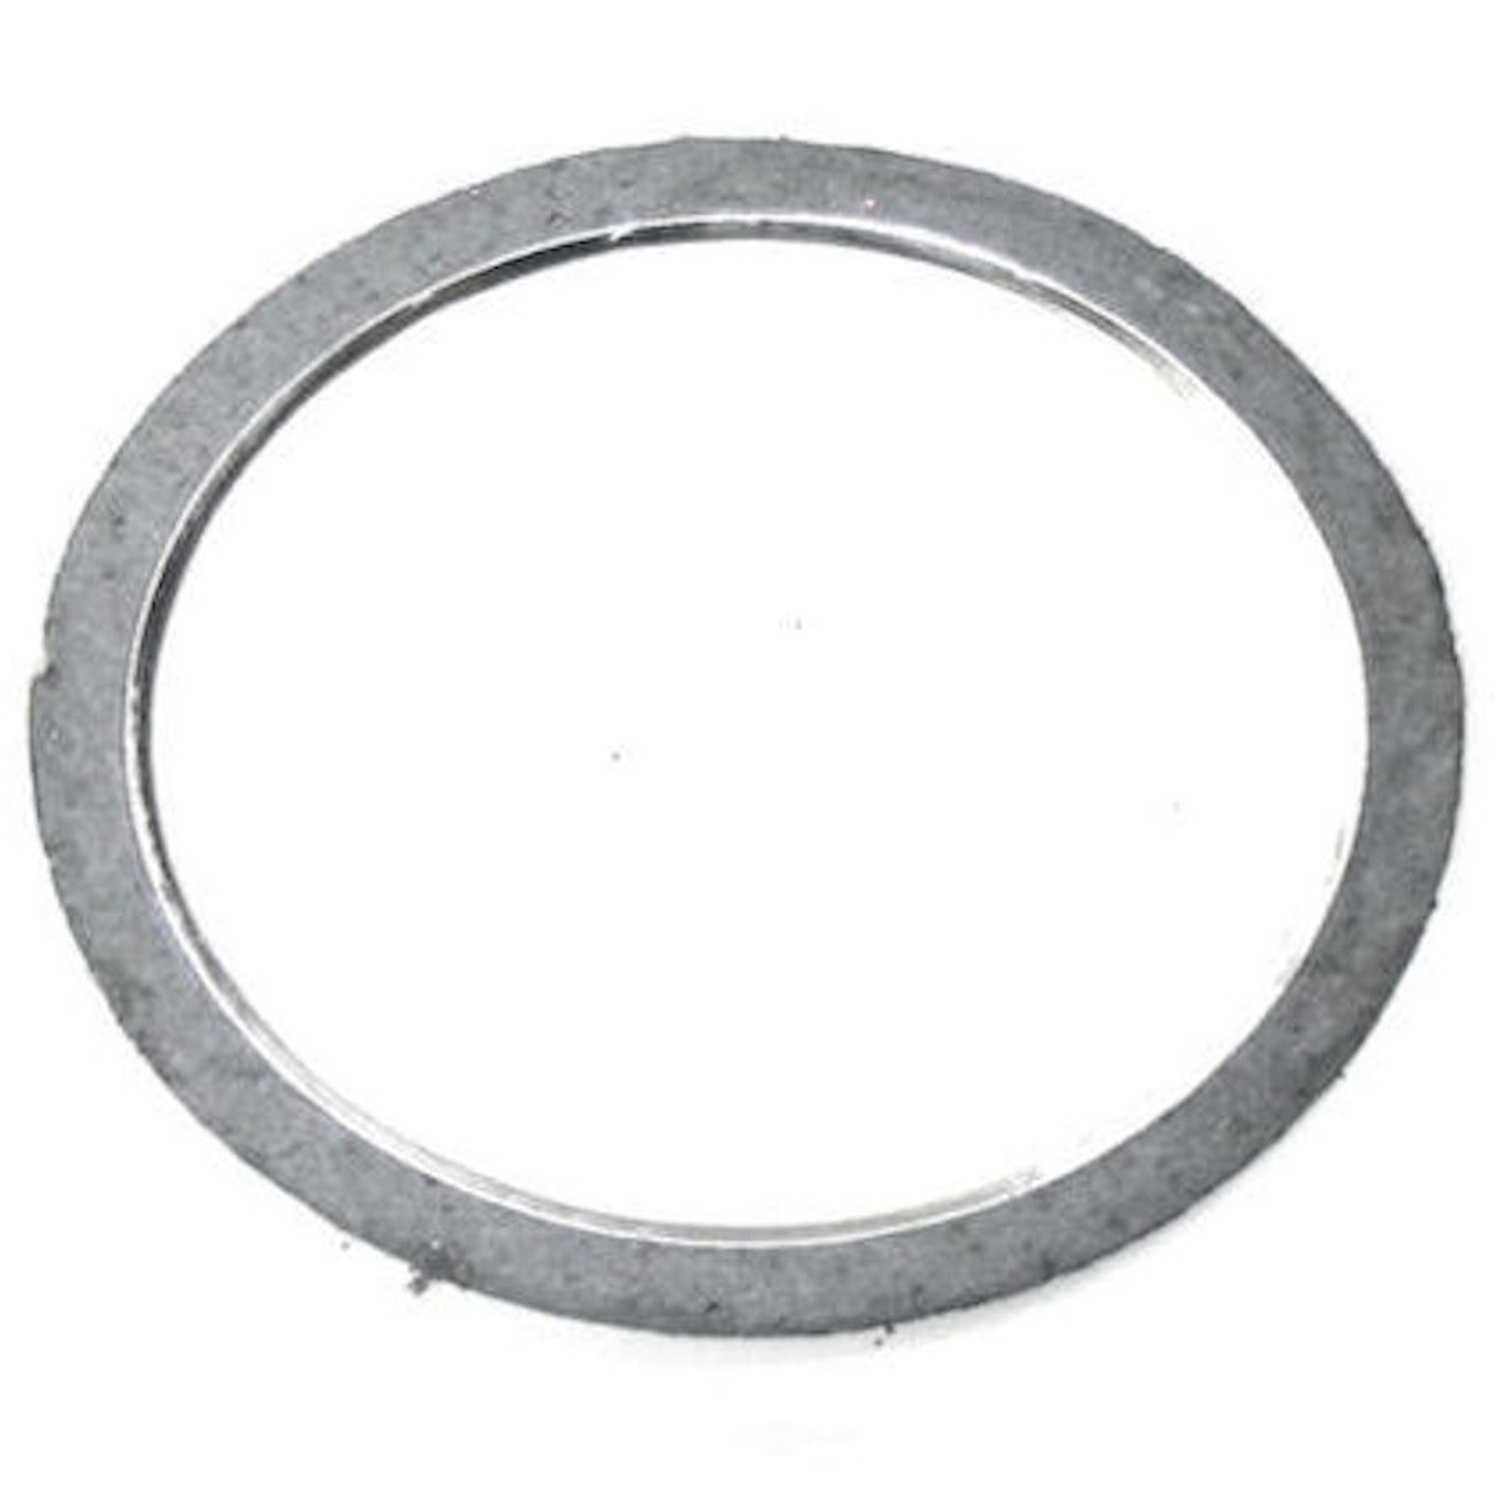 BOSAL 49 STATE CONVERTERS - Exhaust Pipe Flange Gasket (Front) - BSF 256-282